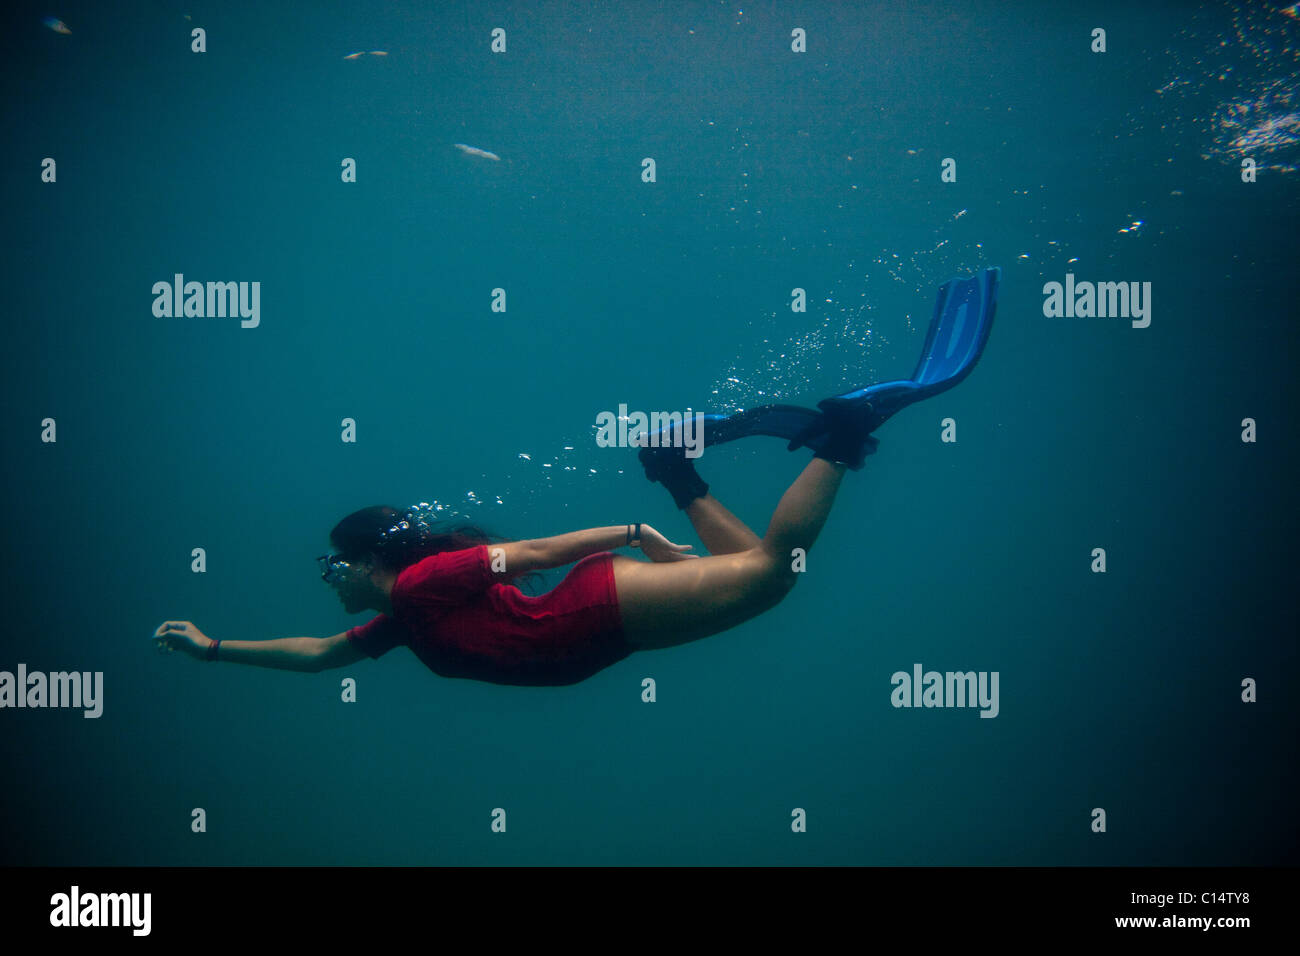 A young Hispanic woman free dives in the Caribbean Sea. - Stock Image